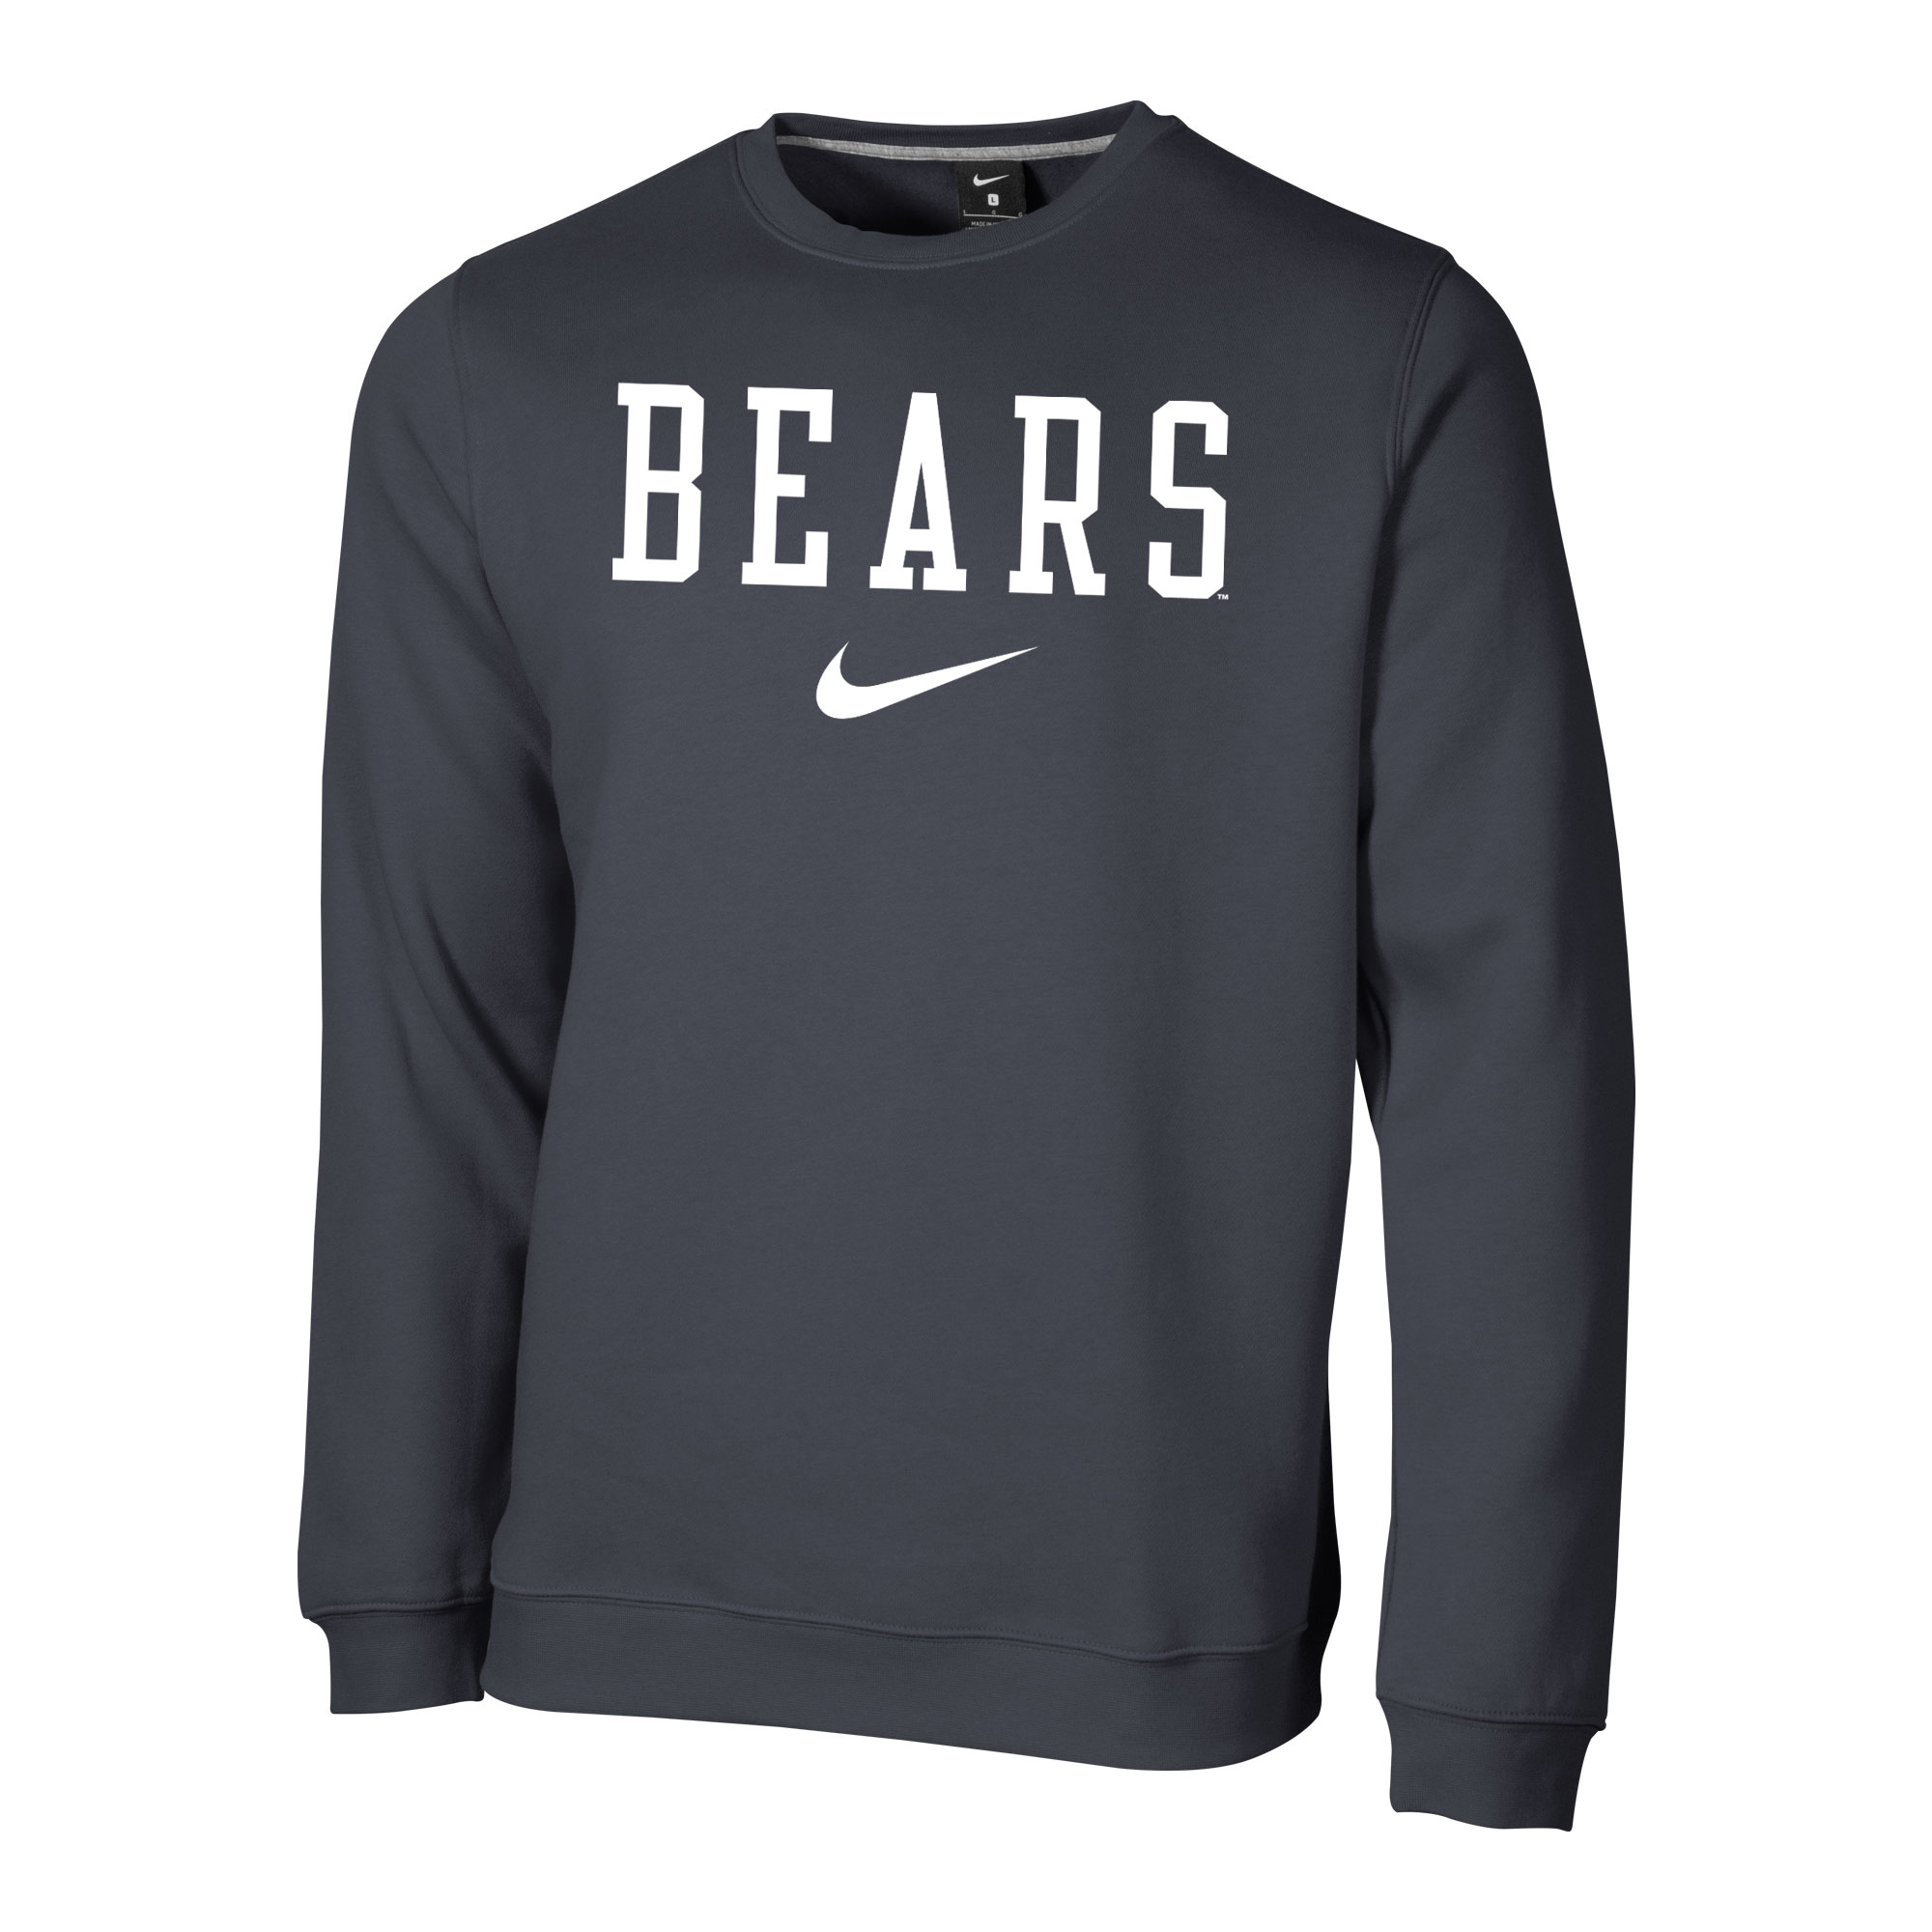 Bears Club Fleece Crew